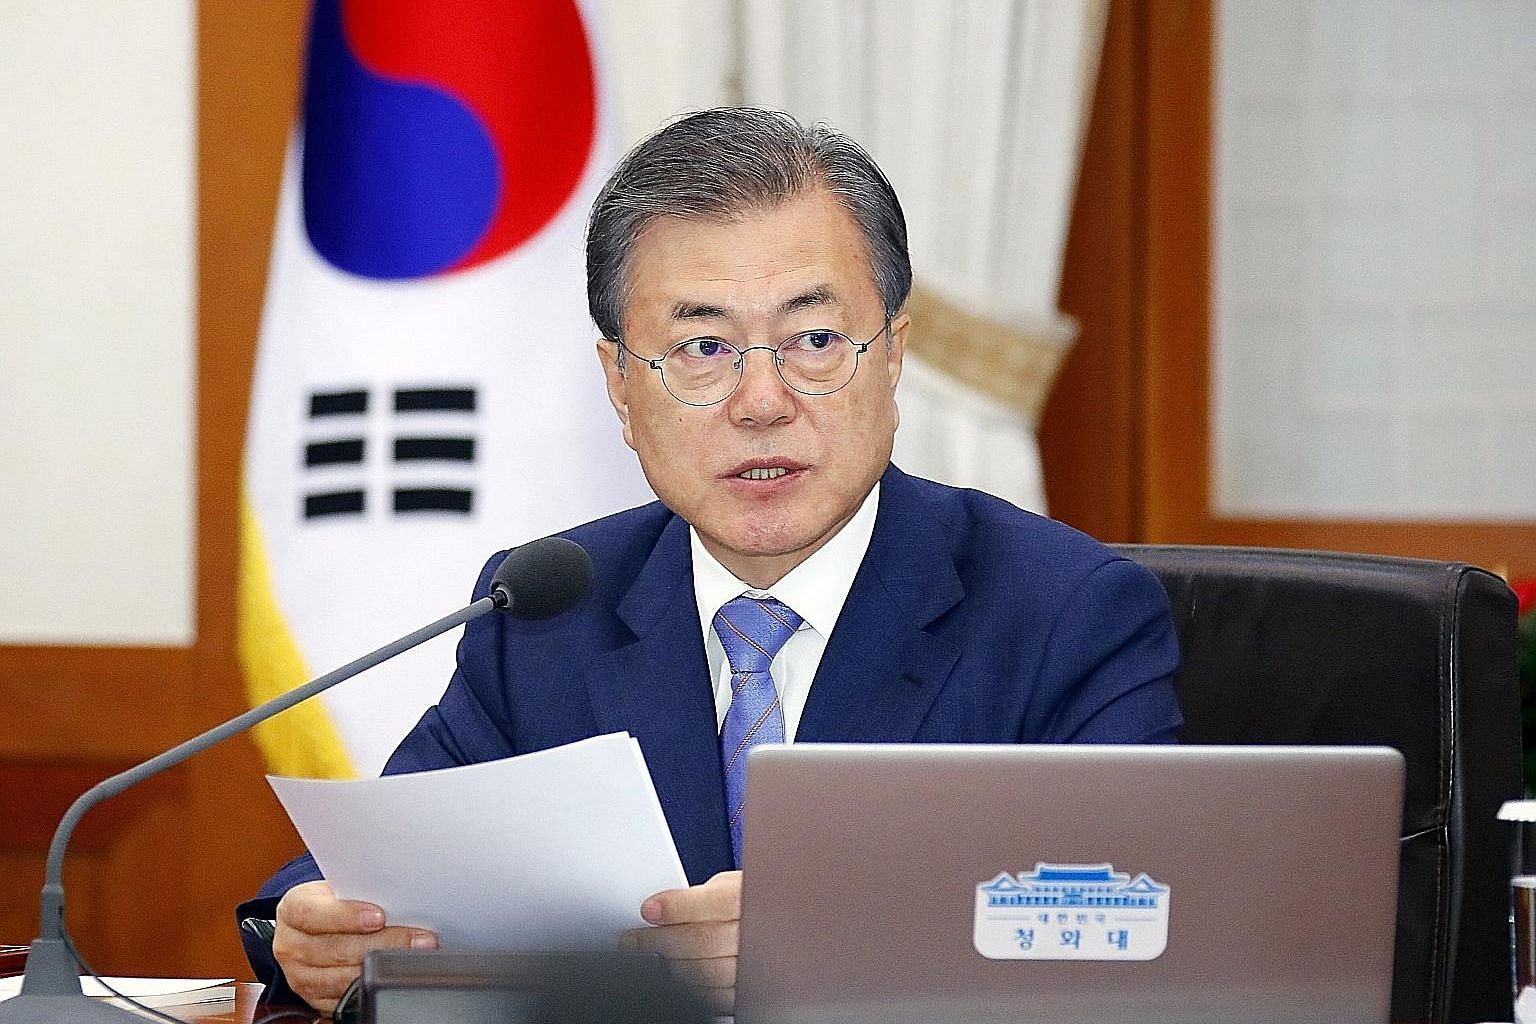 South Korean President Moon Jae-in's attempts to improve ties with North Korea and to boost the sluggish economy have both stalled. PHOTO: DPA